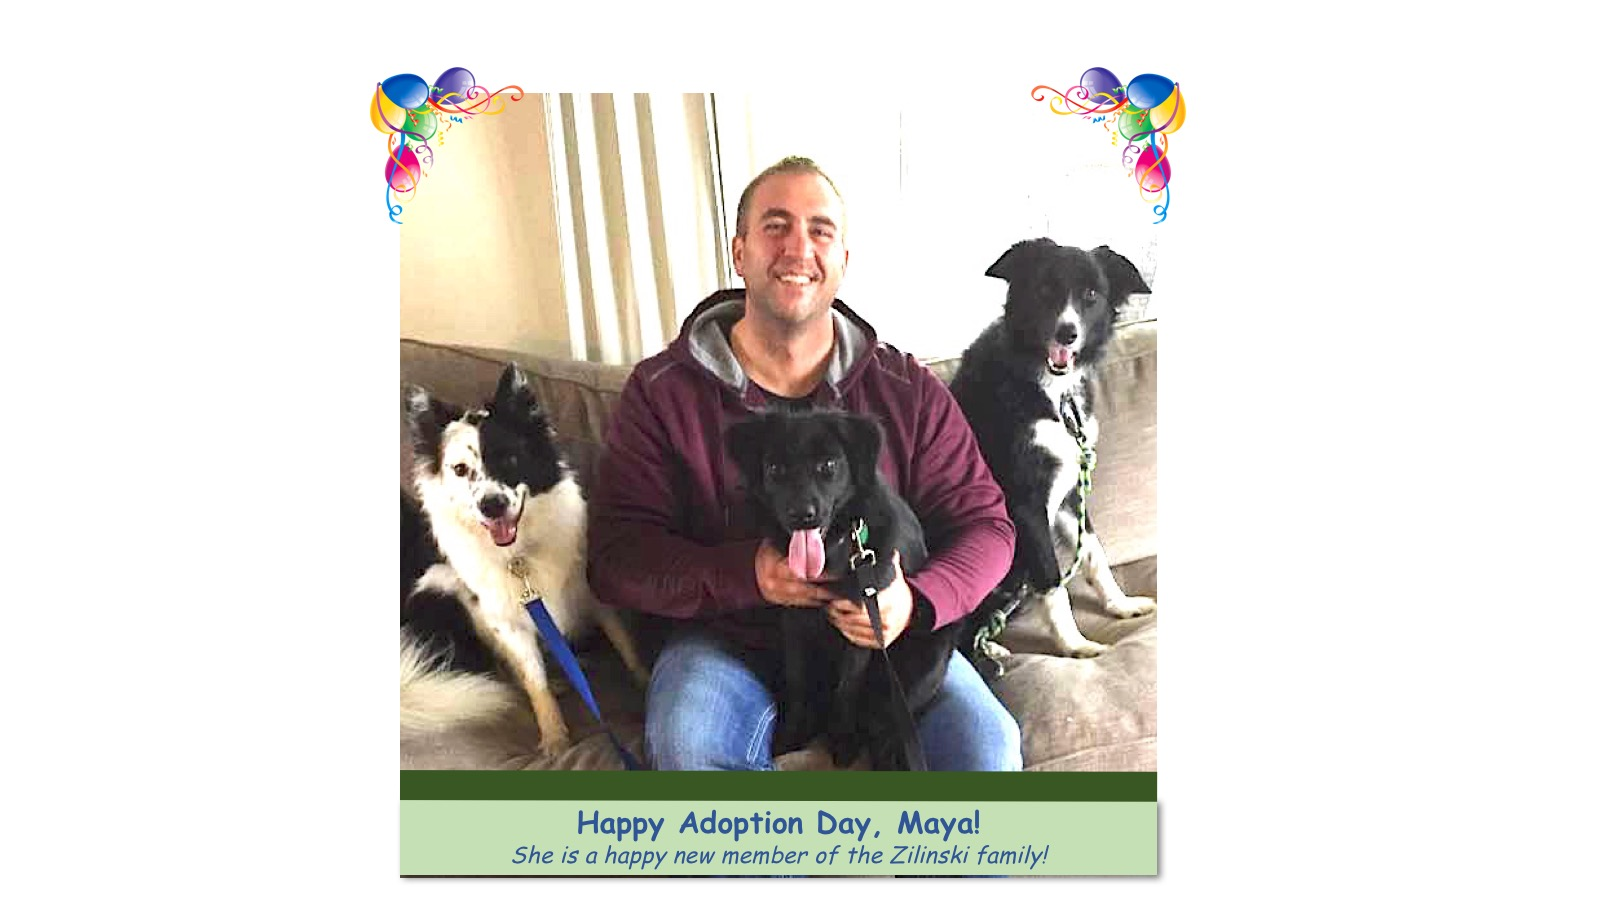 Maya_Adoption_photo.jpg